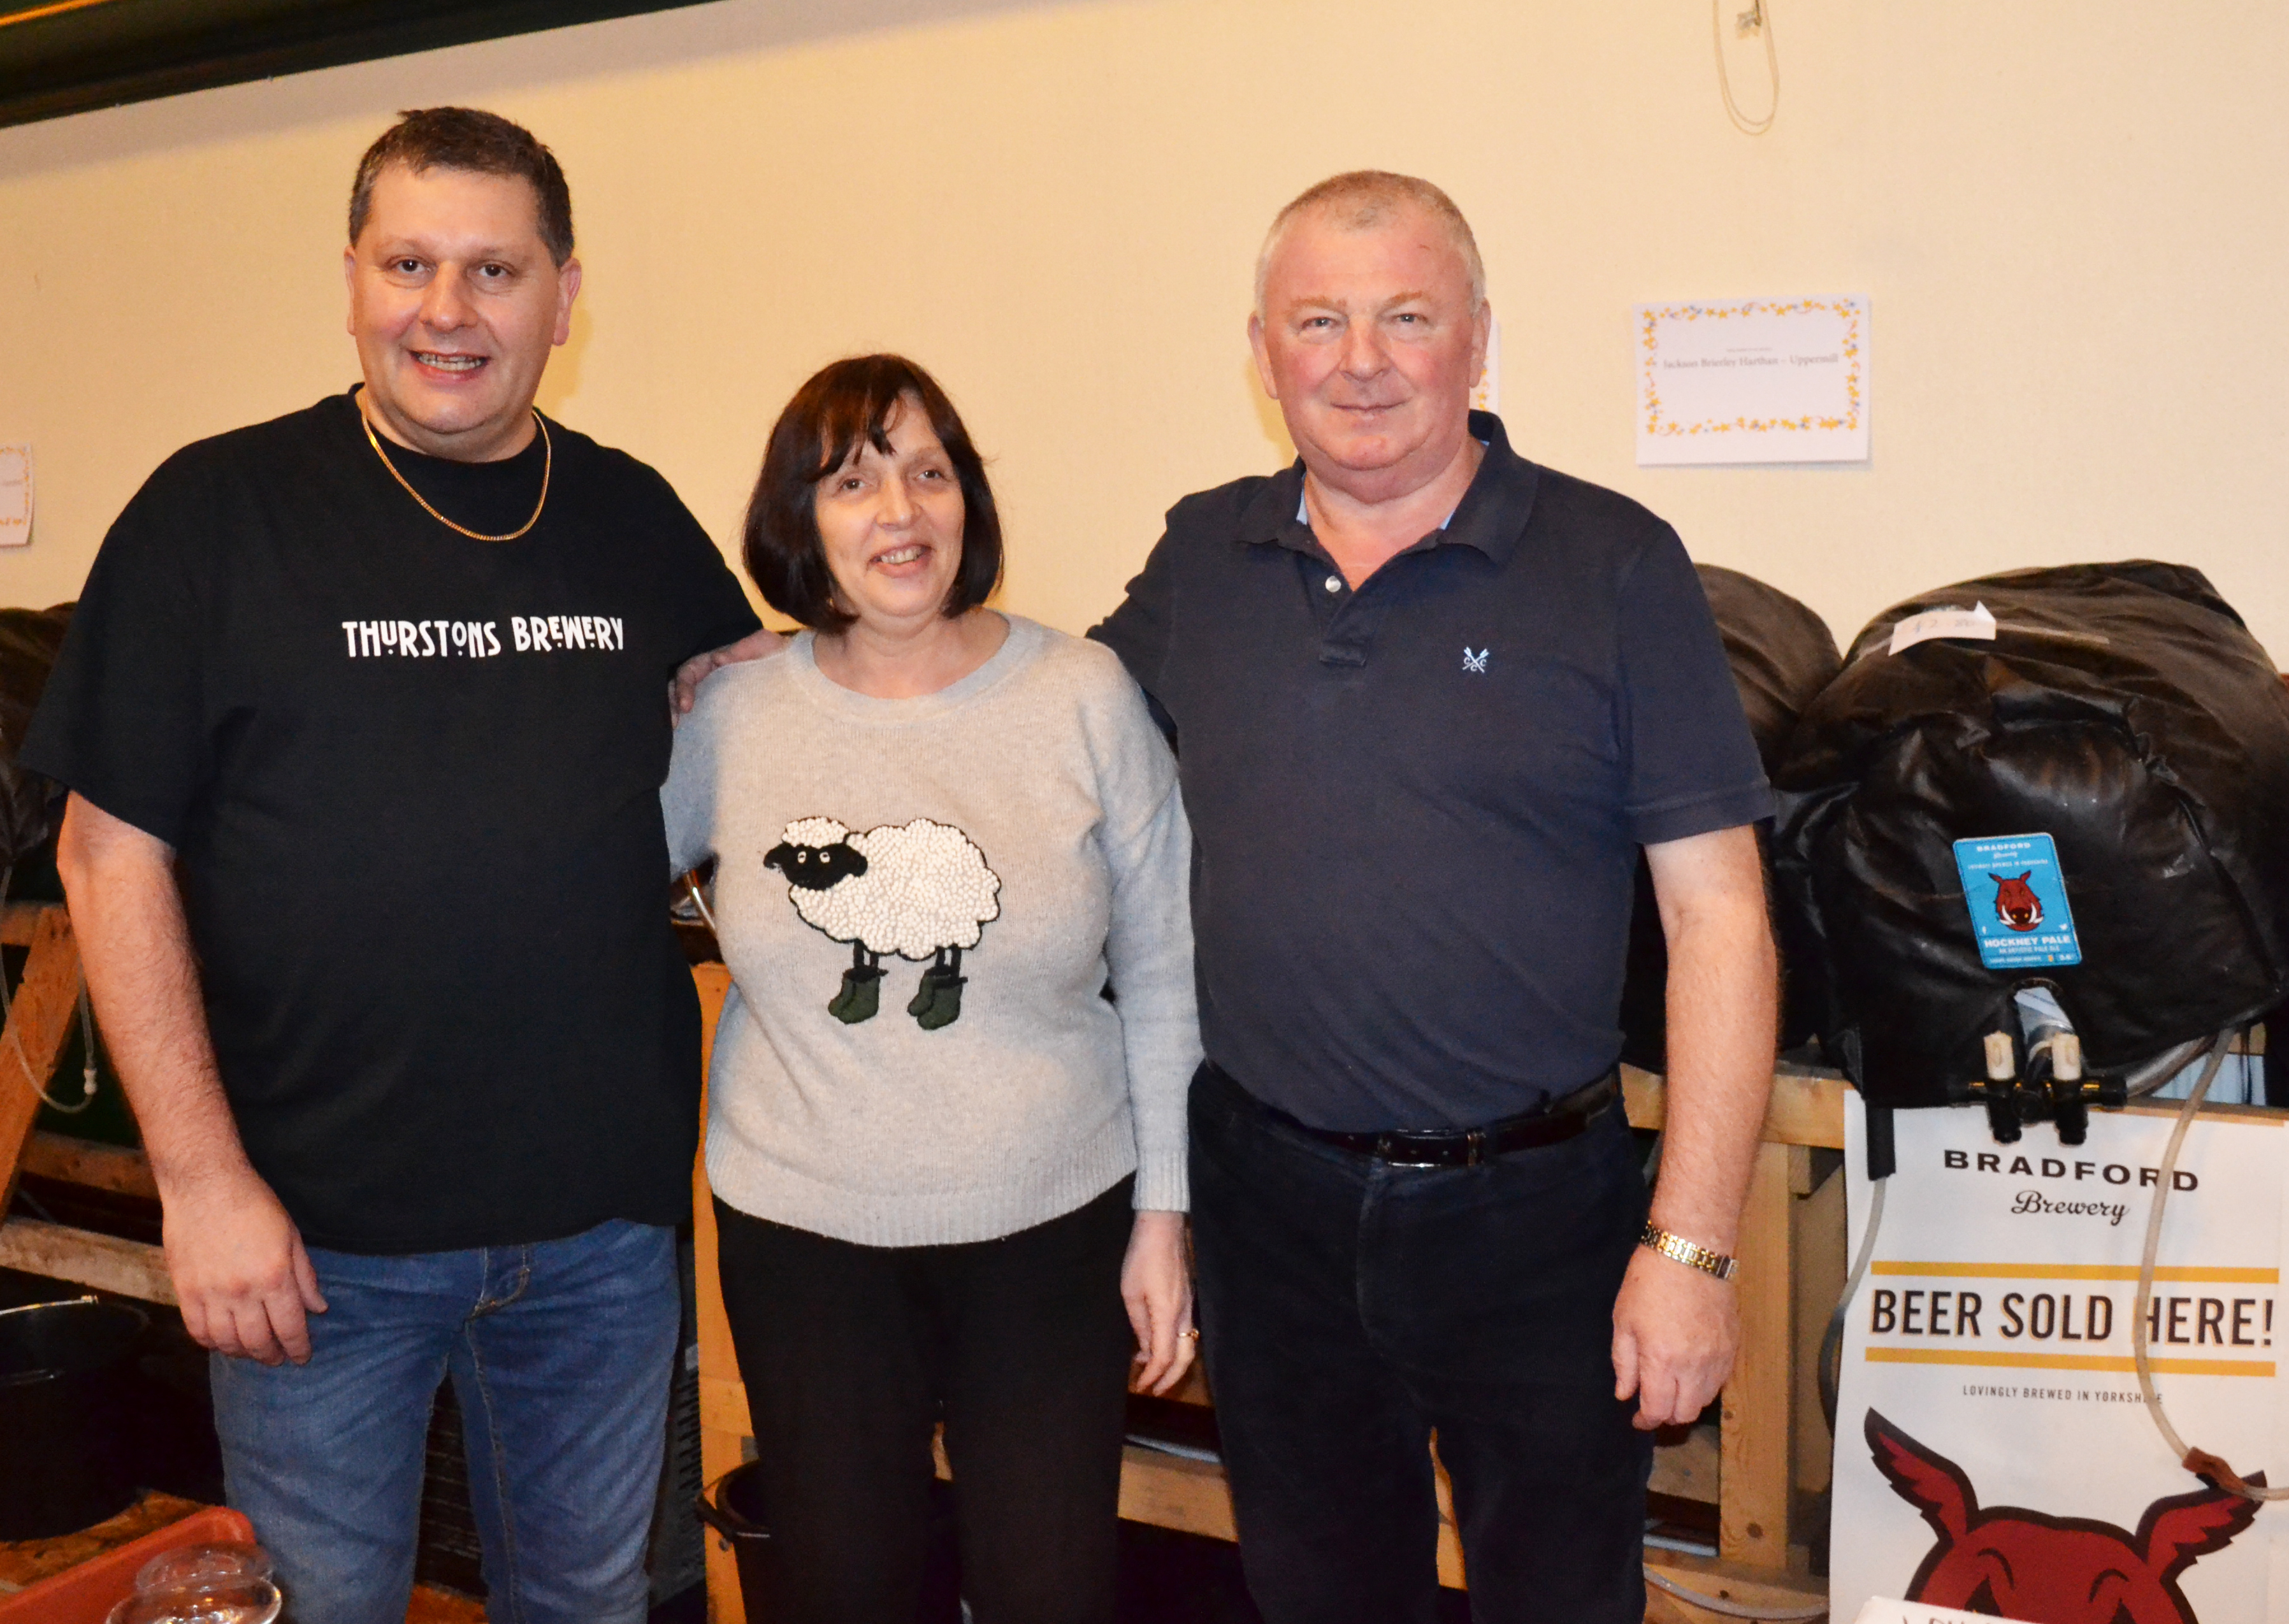 Peter Buckley, Heather Casson and Peter Archer